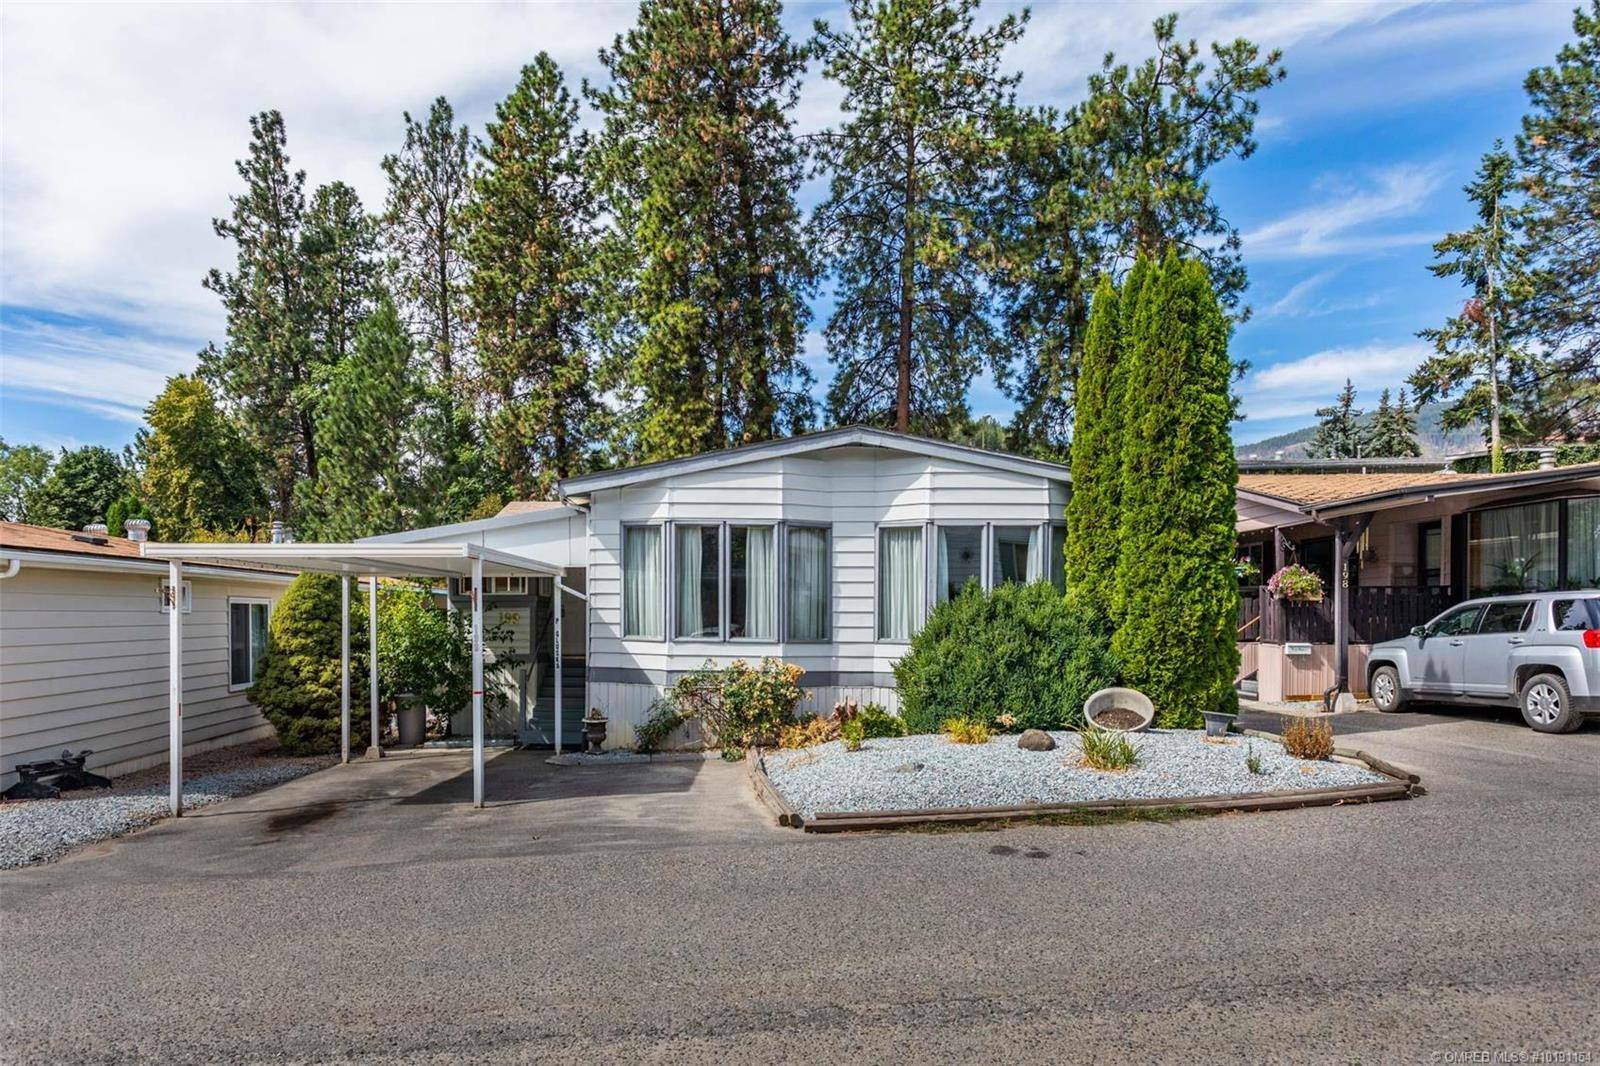 Home for sale at 1999 Highway 97 S Hy Unit 97 West Kelowna British Columbia - MLS: 10191154